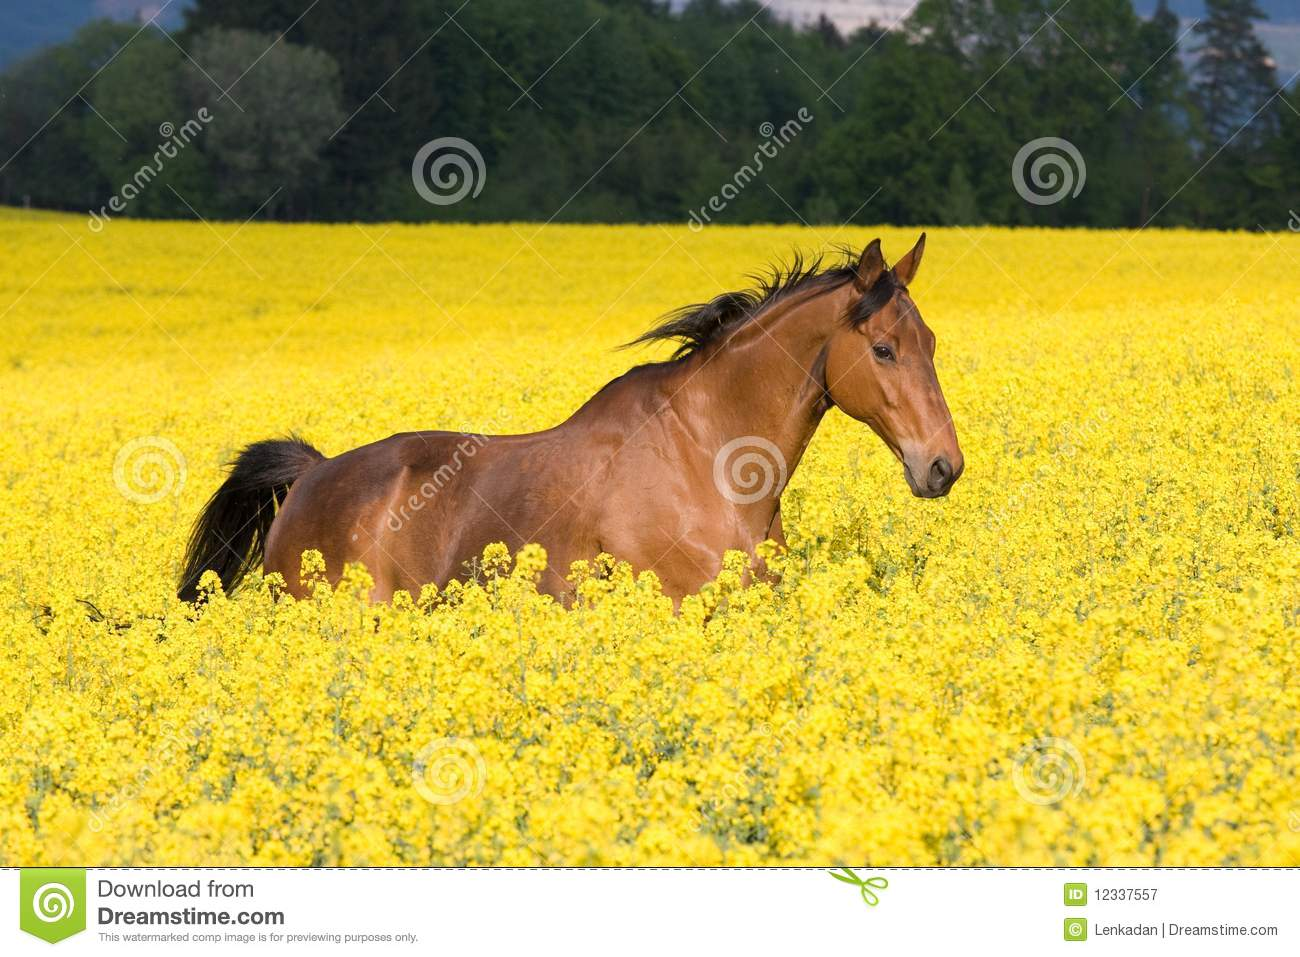 Most Beautiful Wallpapers Of Animals Running Horse In Colza Field Stock Image Image Of Body